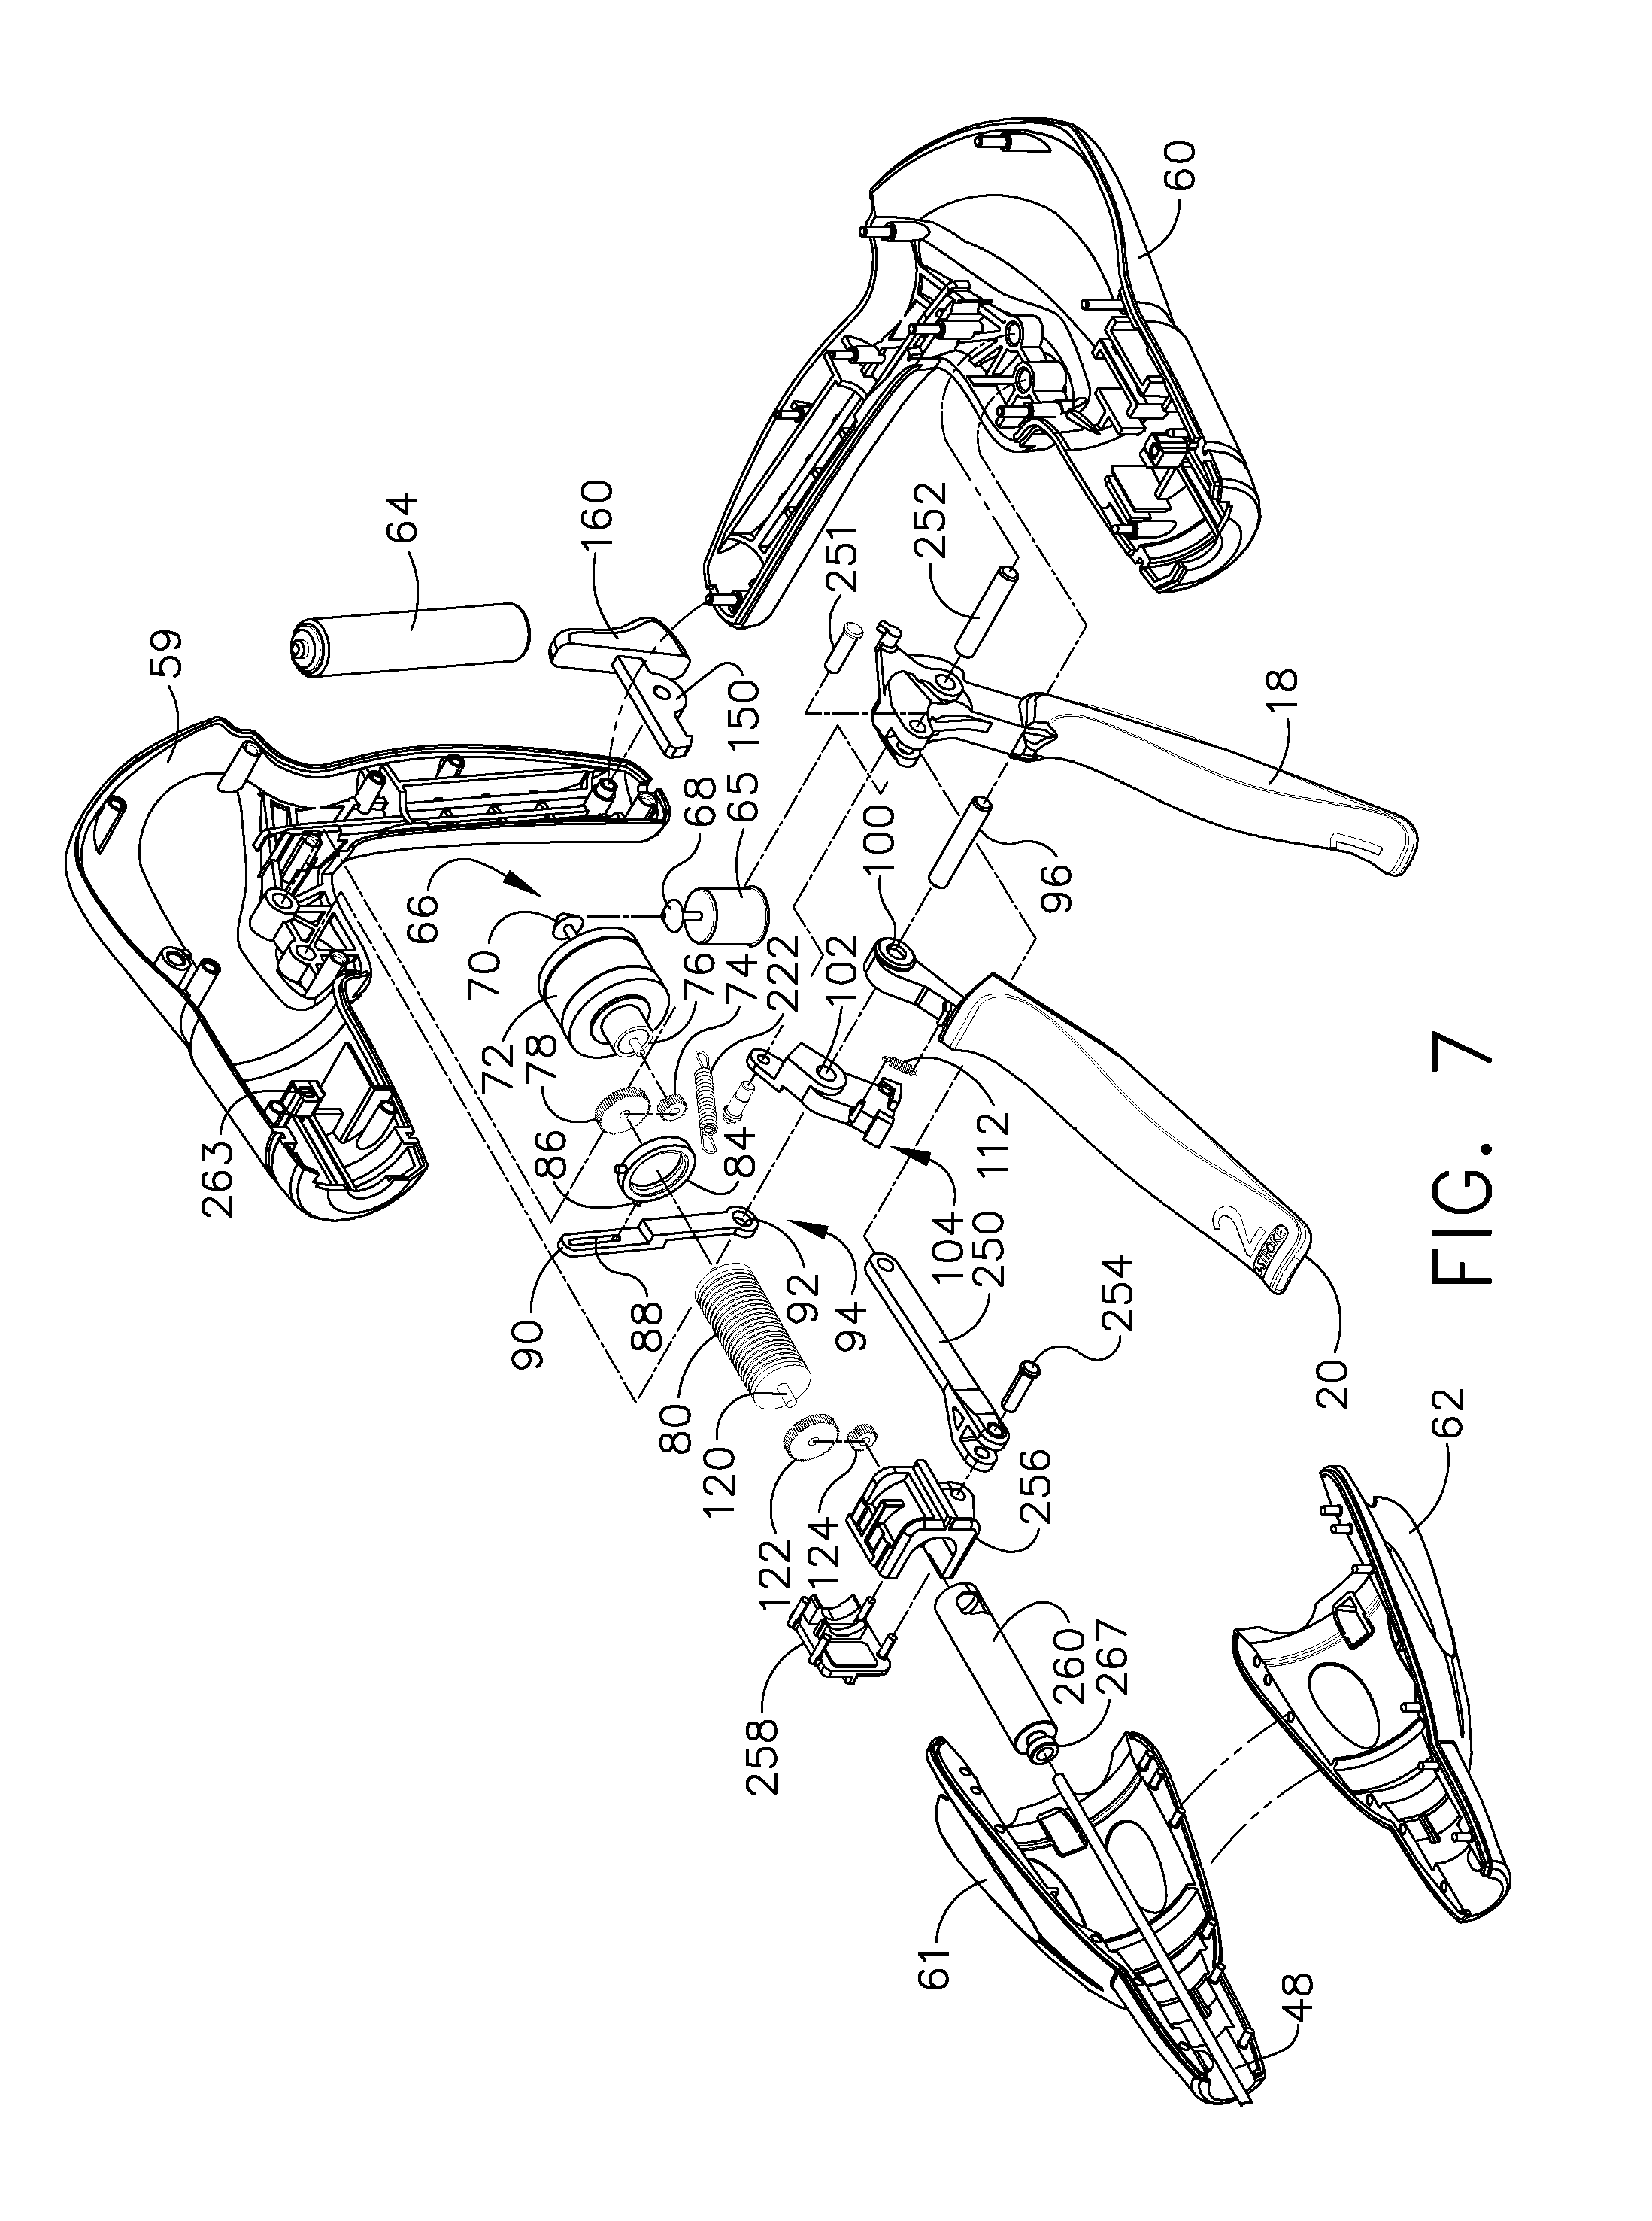 us8292155b2 motor driven surgical cutting and fastening instrument Honda C110 us8292155b2 motor driven surgical cutting and fastening instrument with tactile position feedback patents